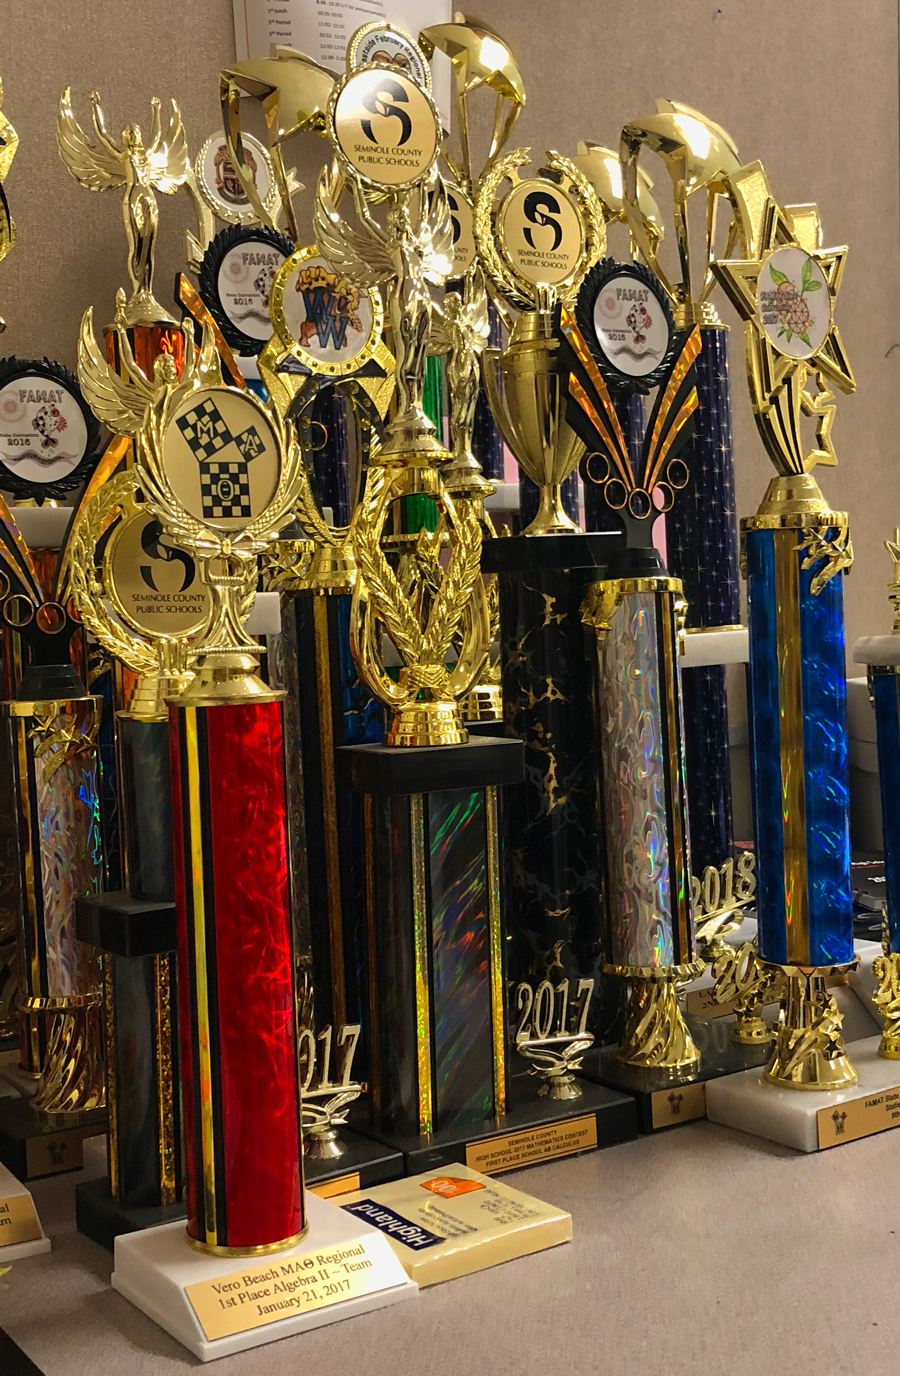 Seminole High School has been successful at math competitions, as suggested by the many awards they have won.